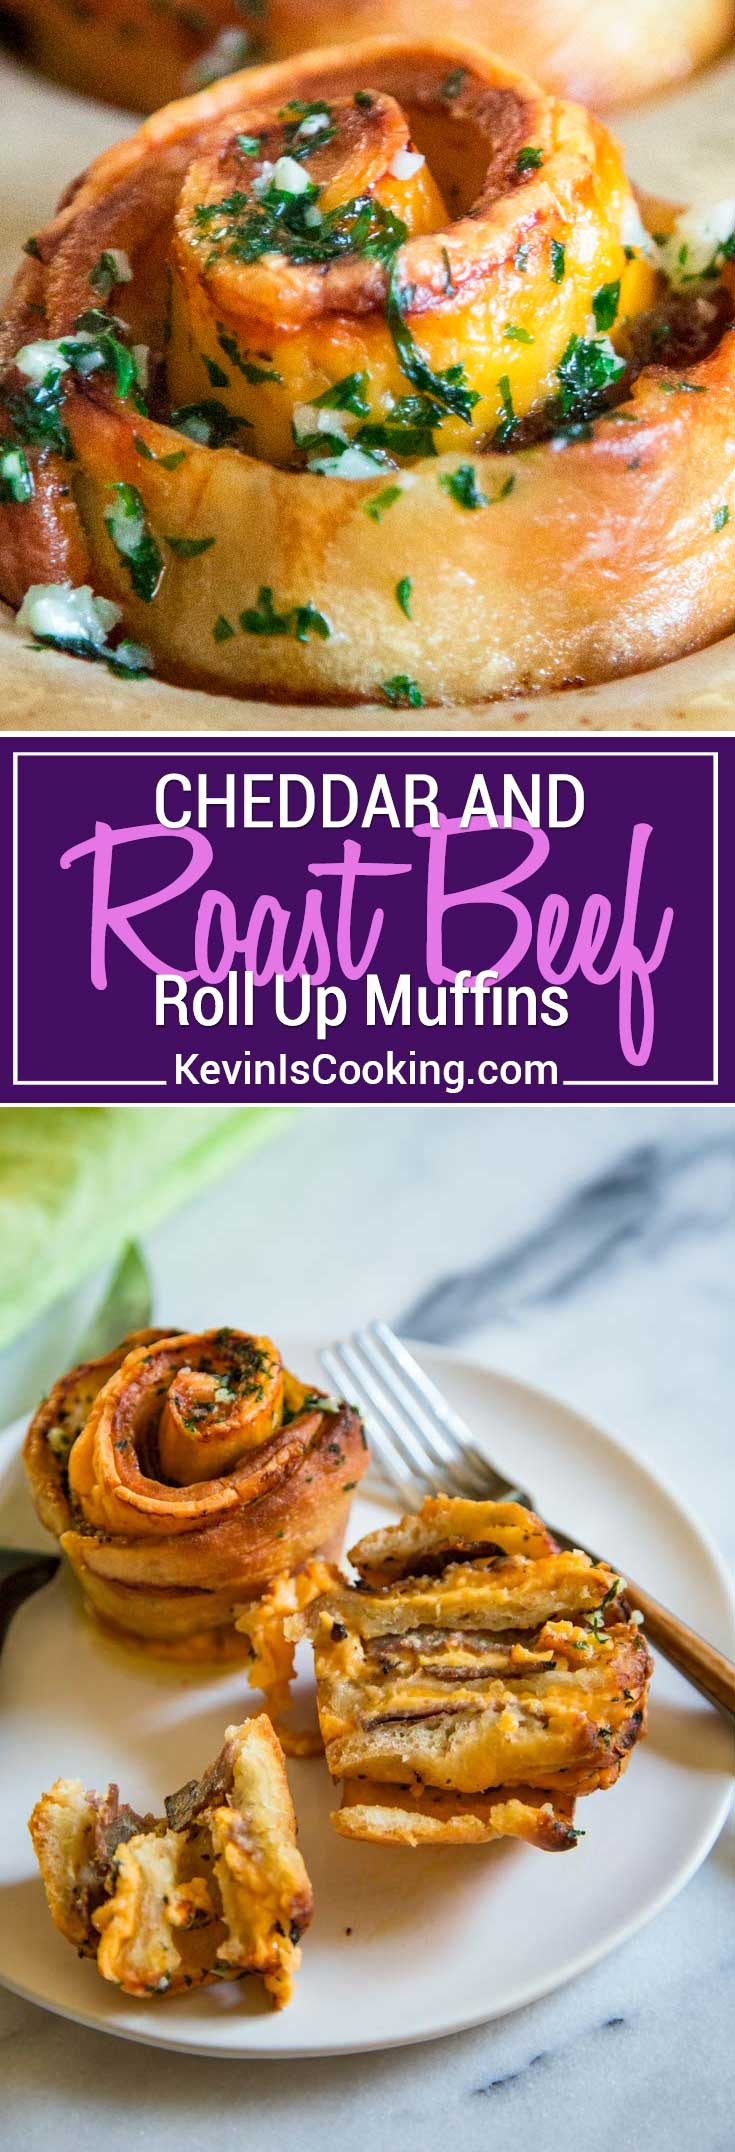 My baked Roast Beef Cheddar Muffins start with pizza dough smothered in dijon horseradish cream and layered with slices of tender roast beef and cheddar cheese! Perfect Game Day snacking.